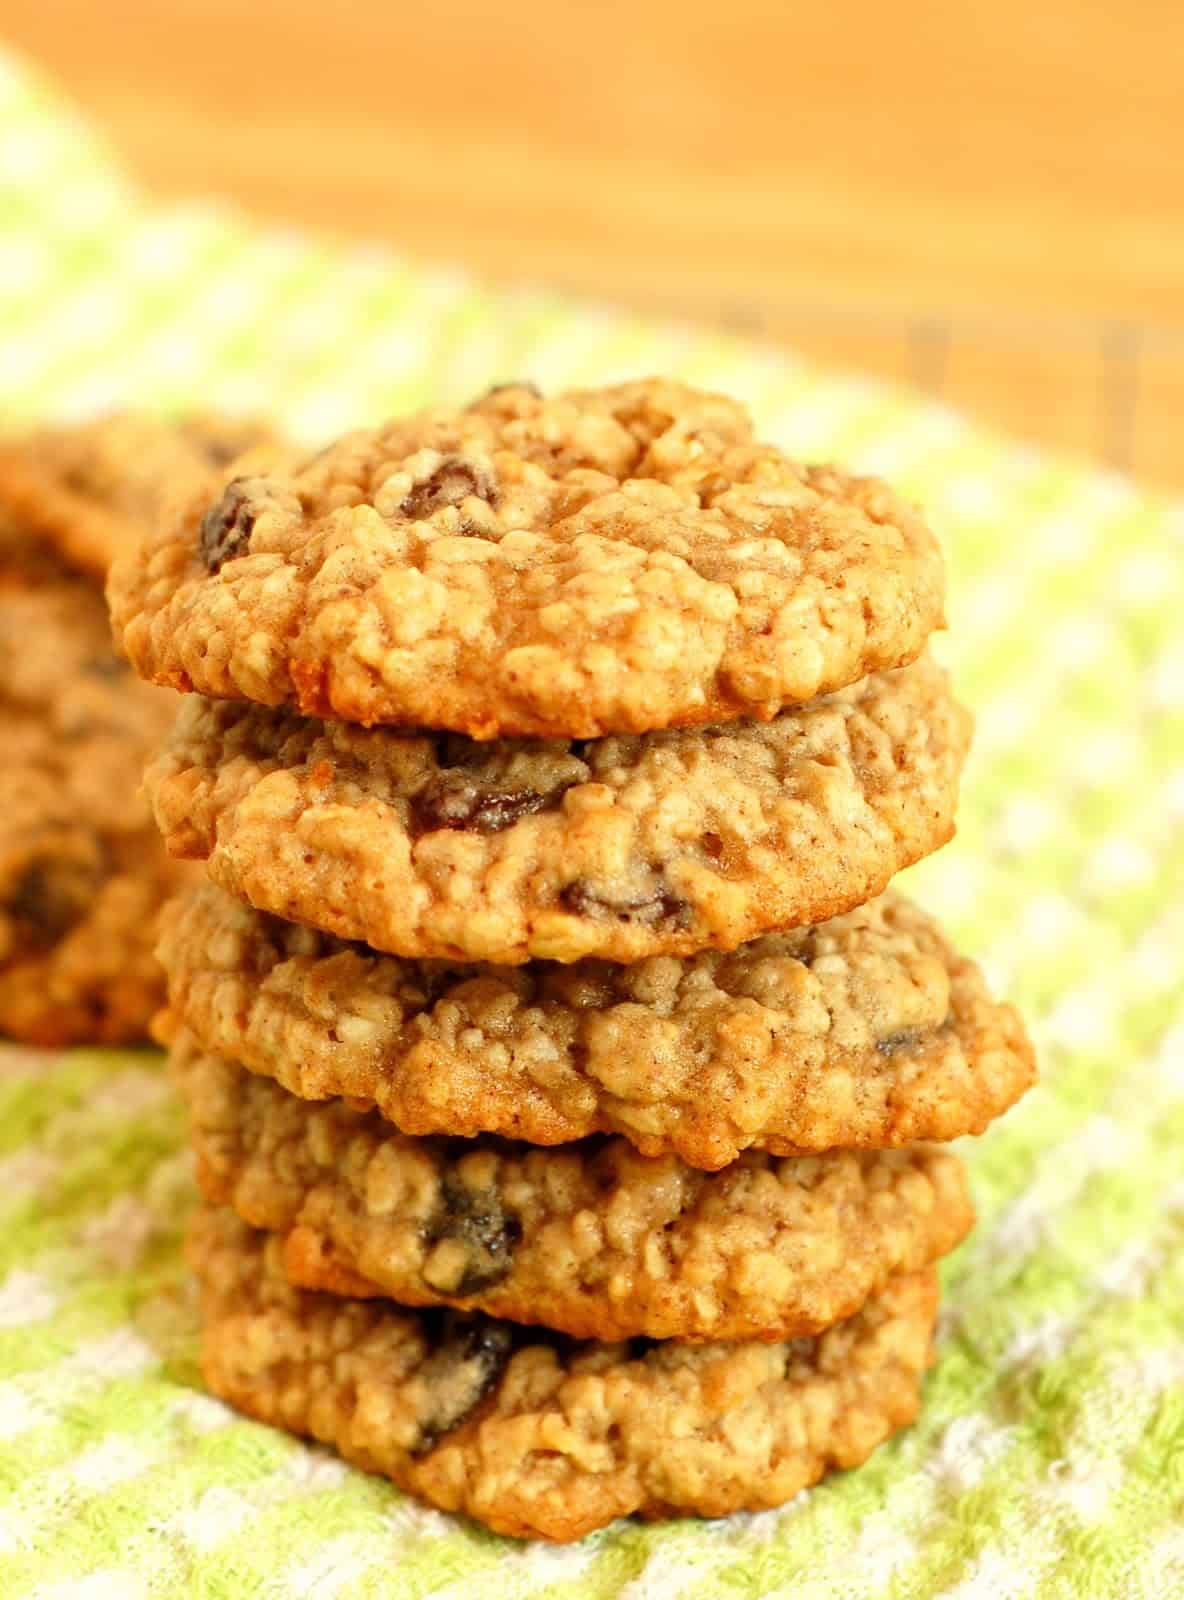 ... oatmeal raisin cookies chewy low fat banana nut oatmeal cookies chewy